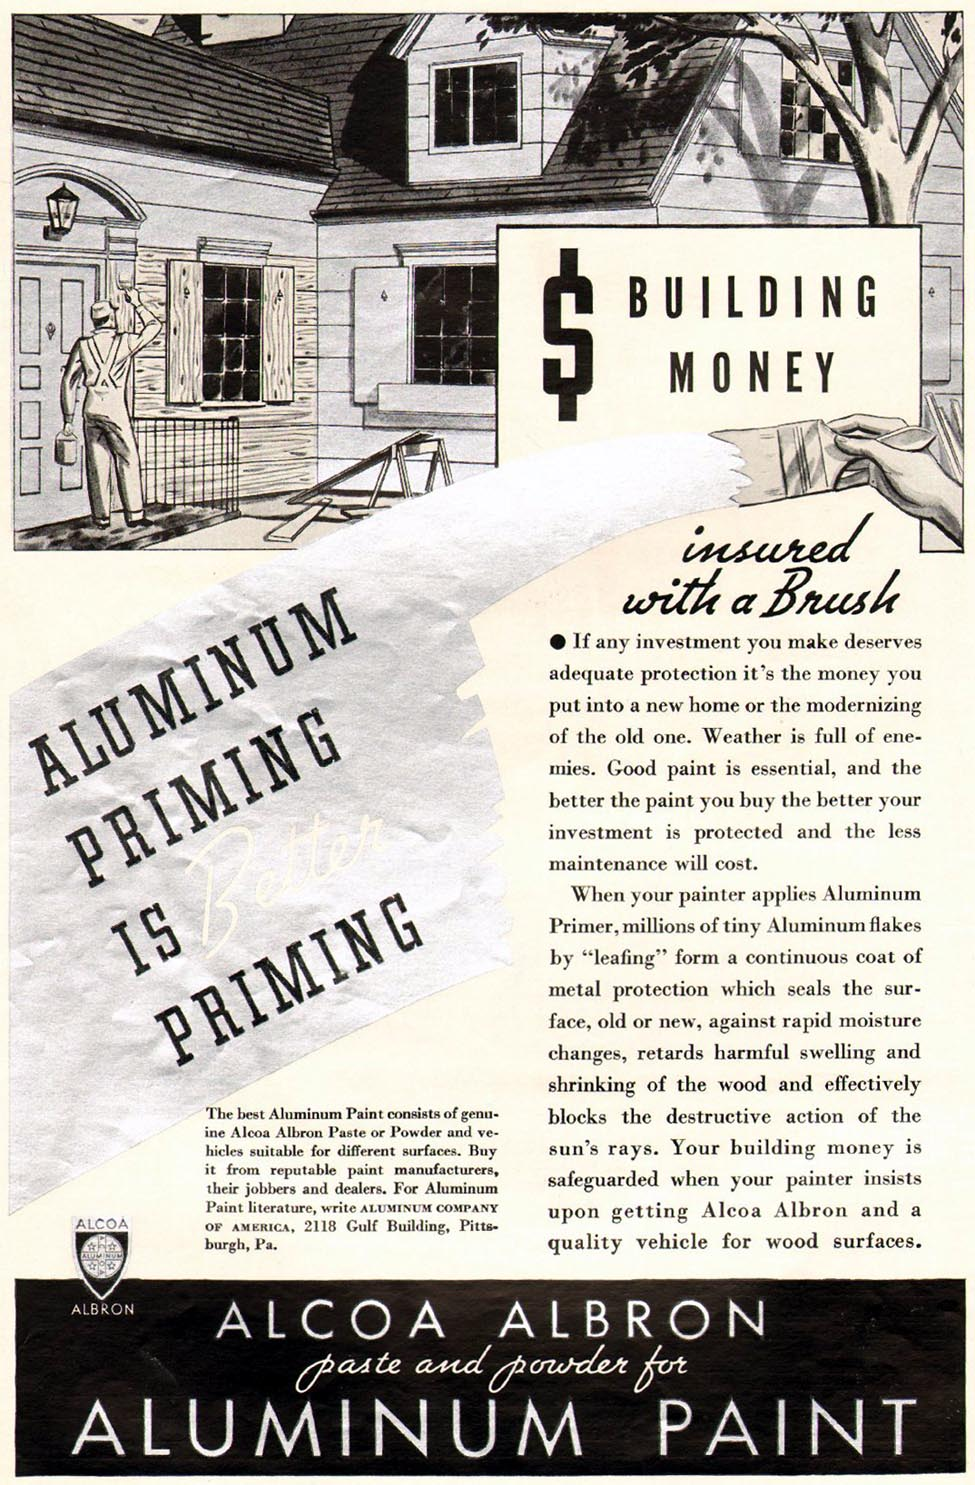 ALCOA ALBRON ALUMINUM PAINT BETTER HOMES AND GARDENS 05/01/1936 p. 110